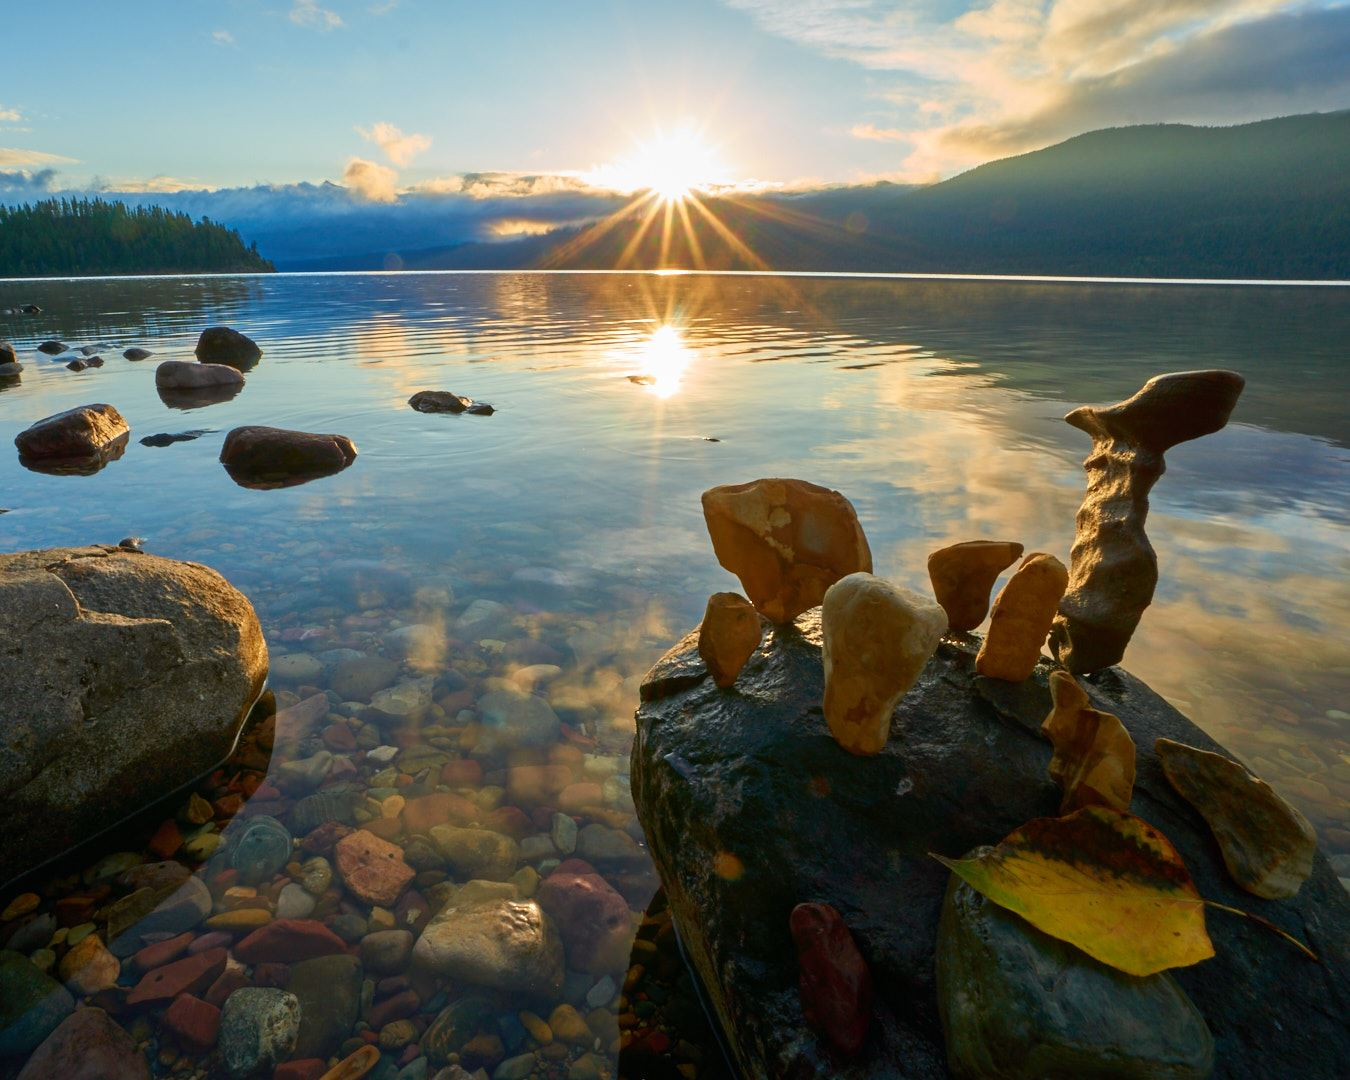 Sunrise over lake with rocks and mountains in background